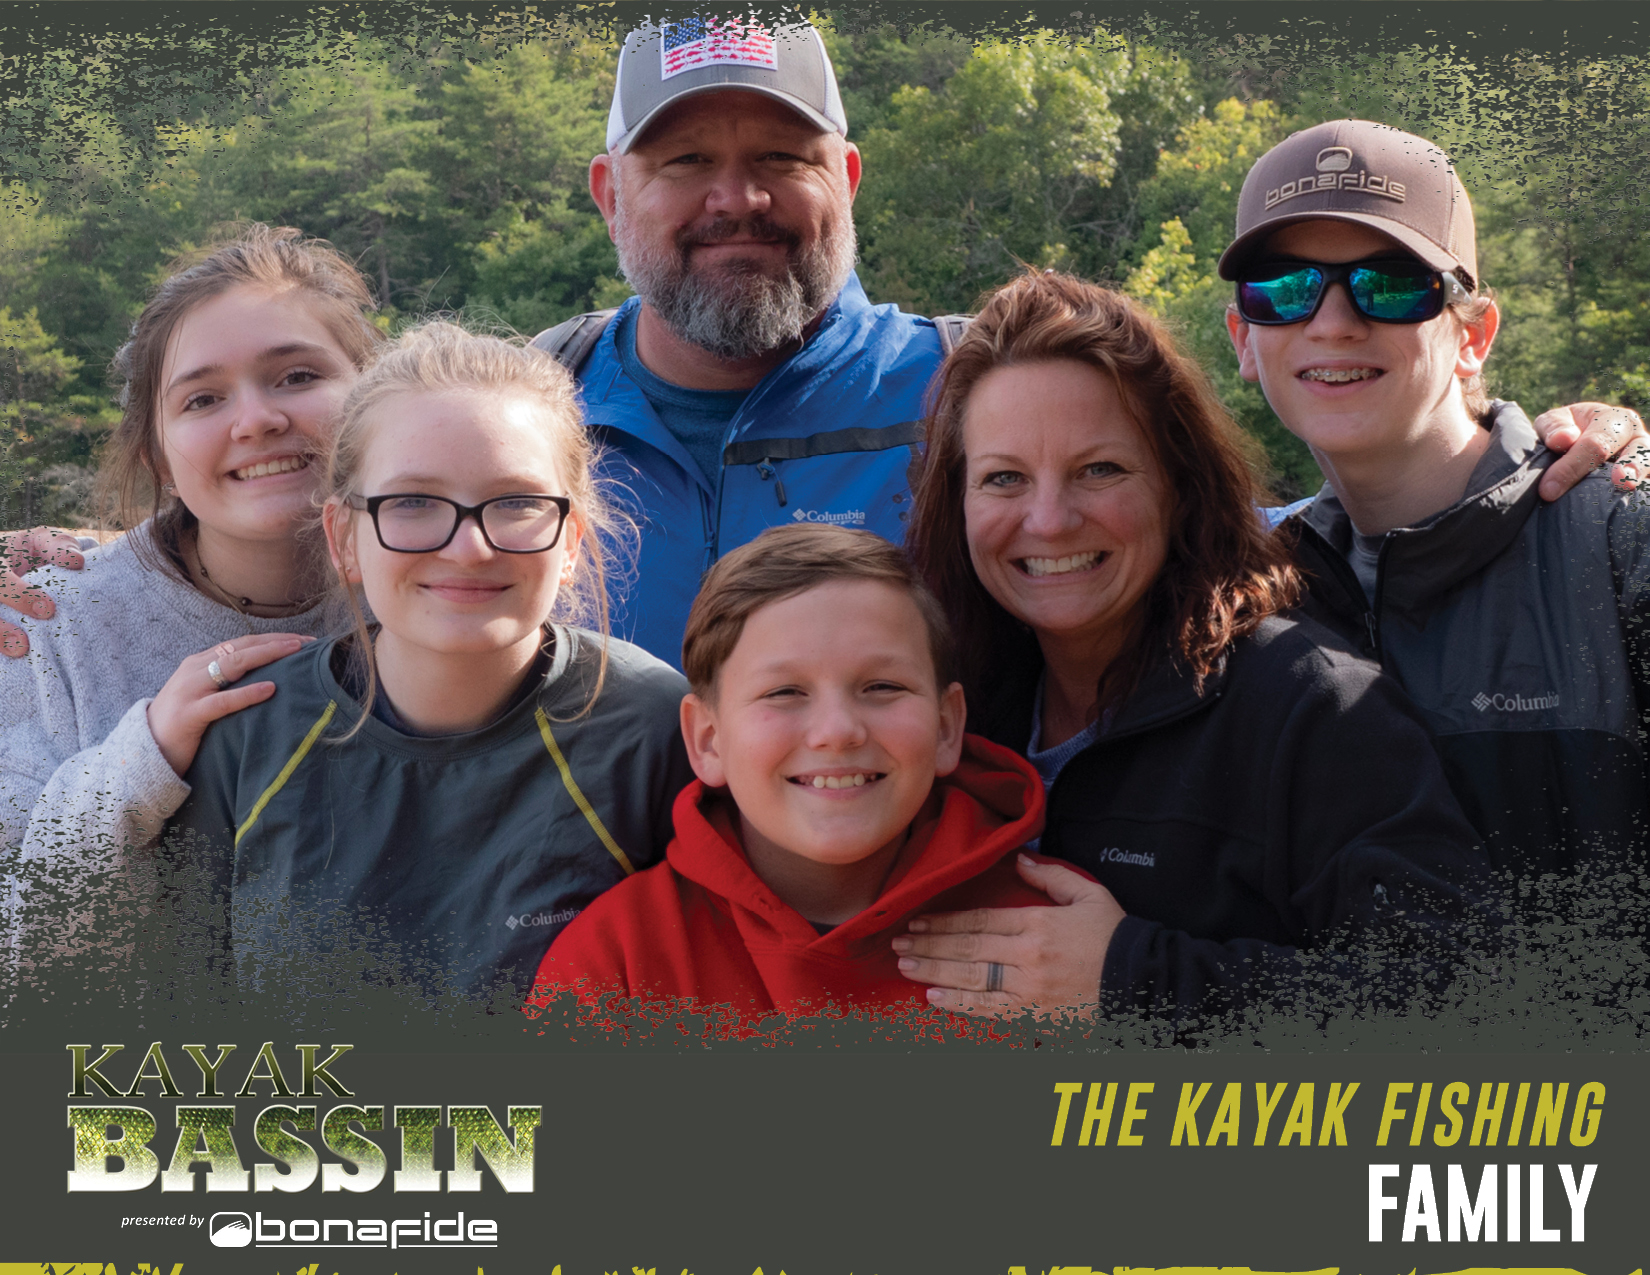 Kayak Bassin with Chad Hoover sponsored by Bonafide Kayaks